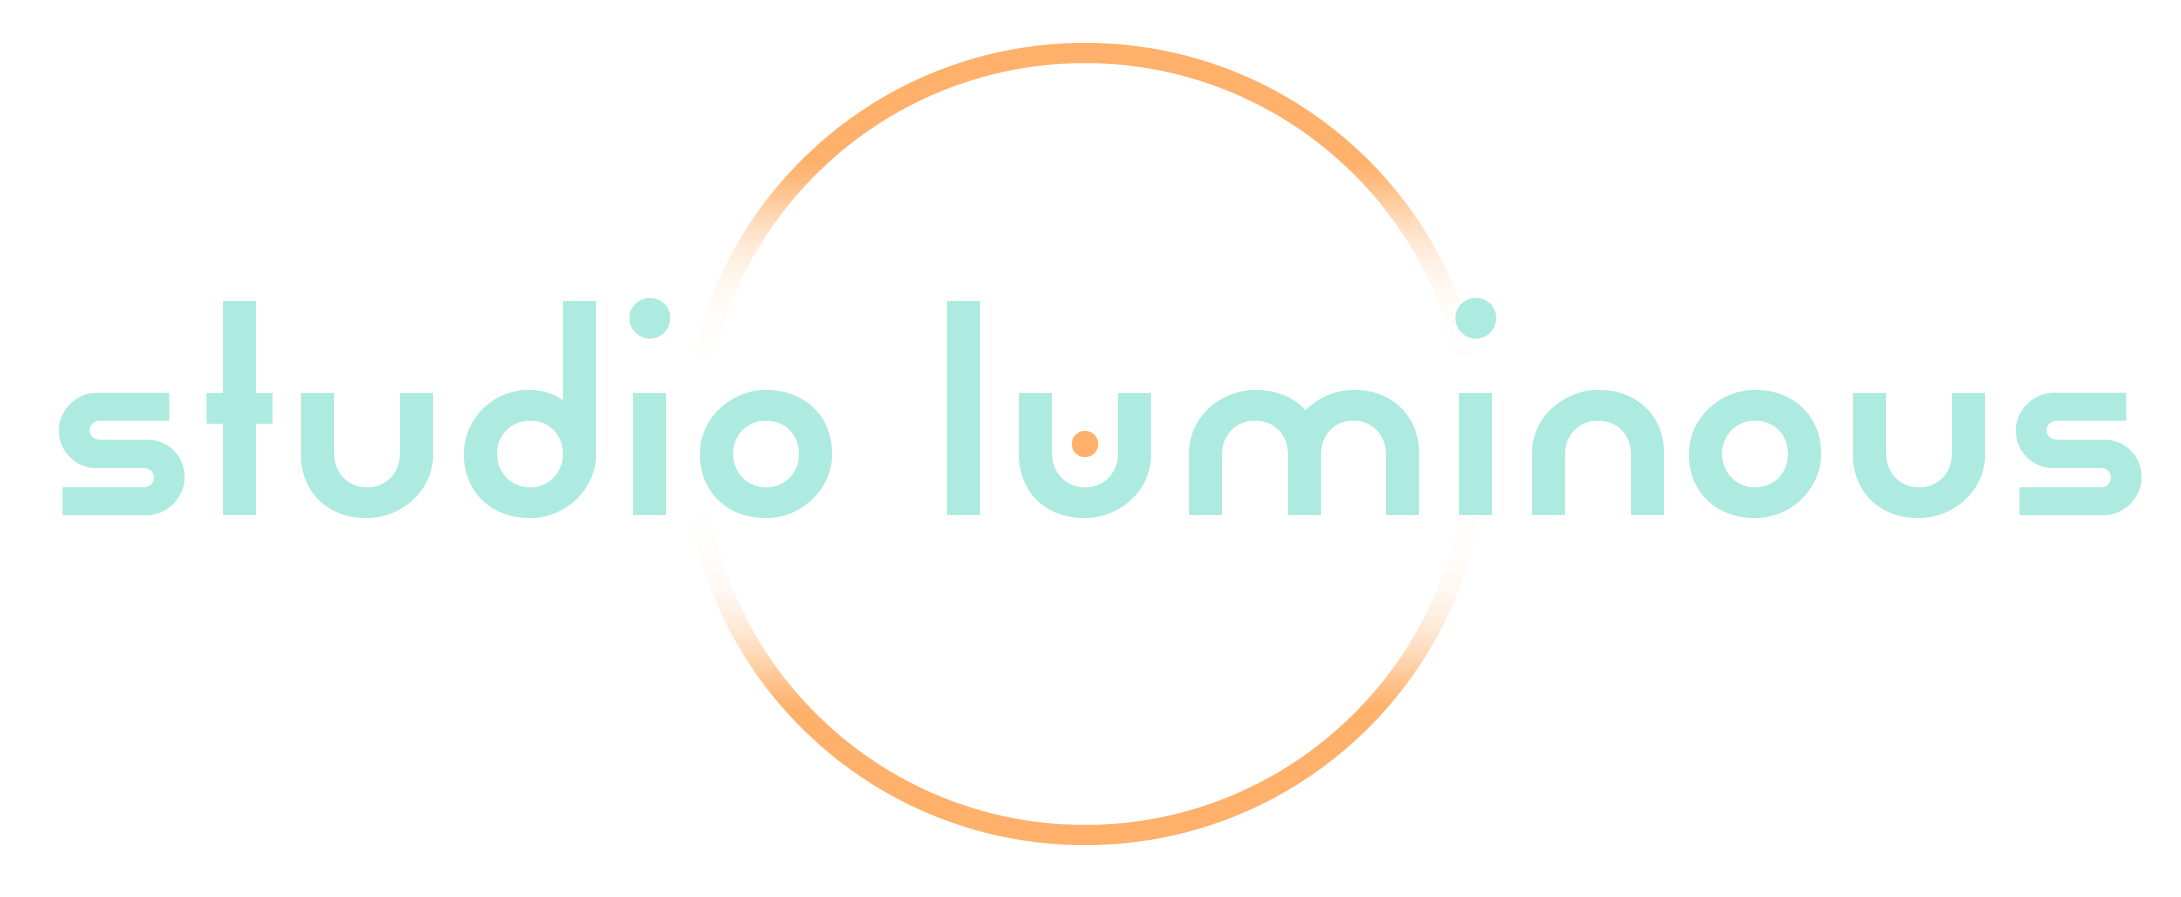 studio luminous